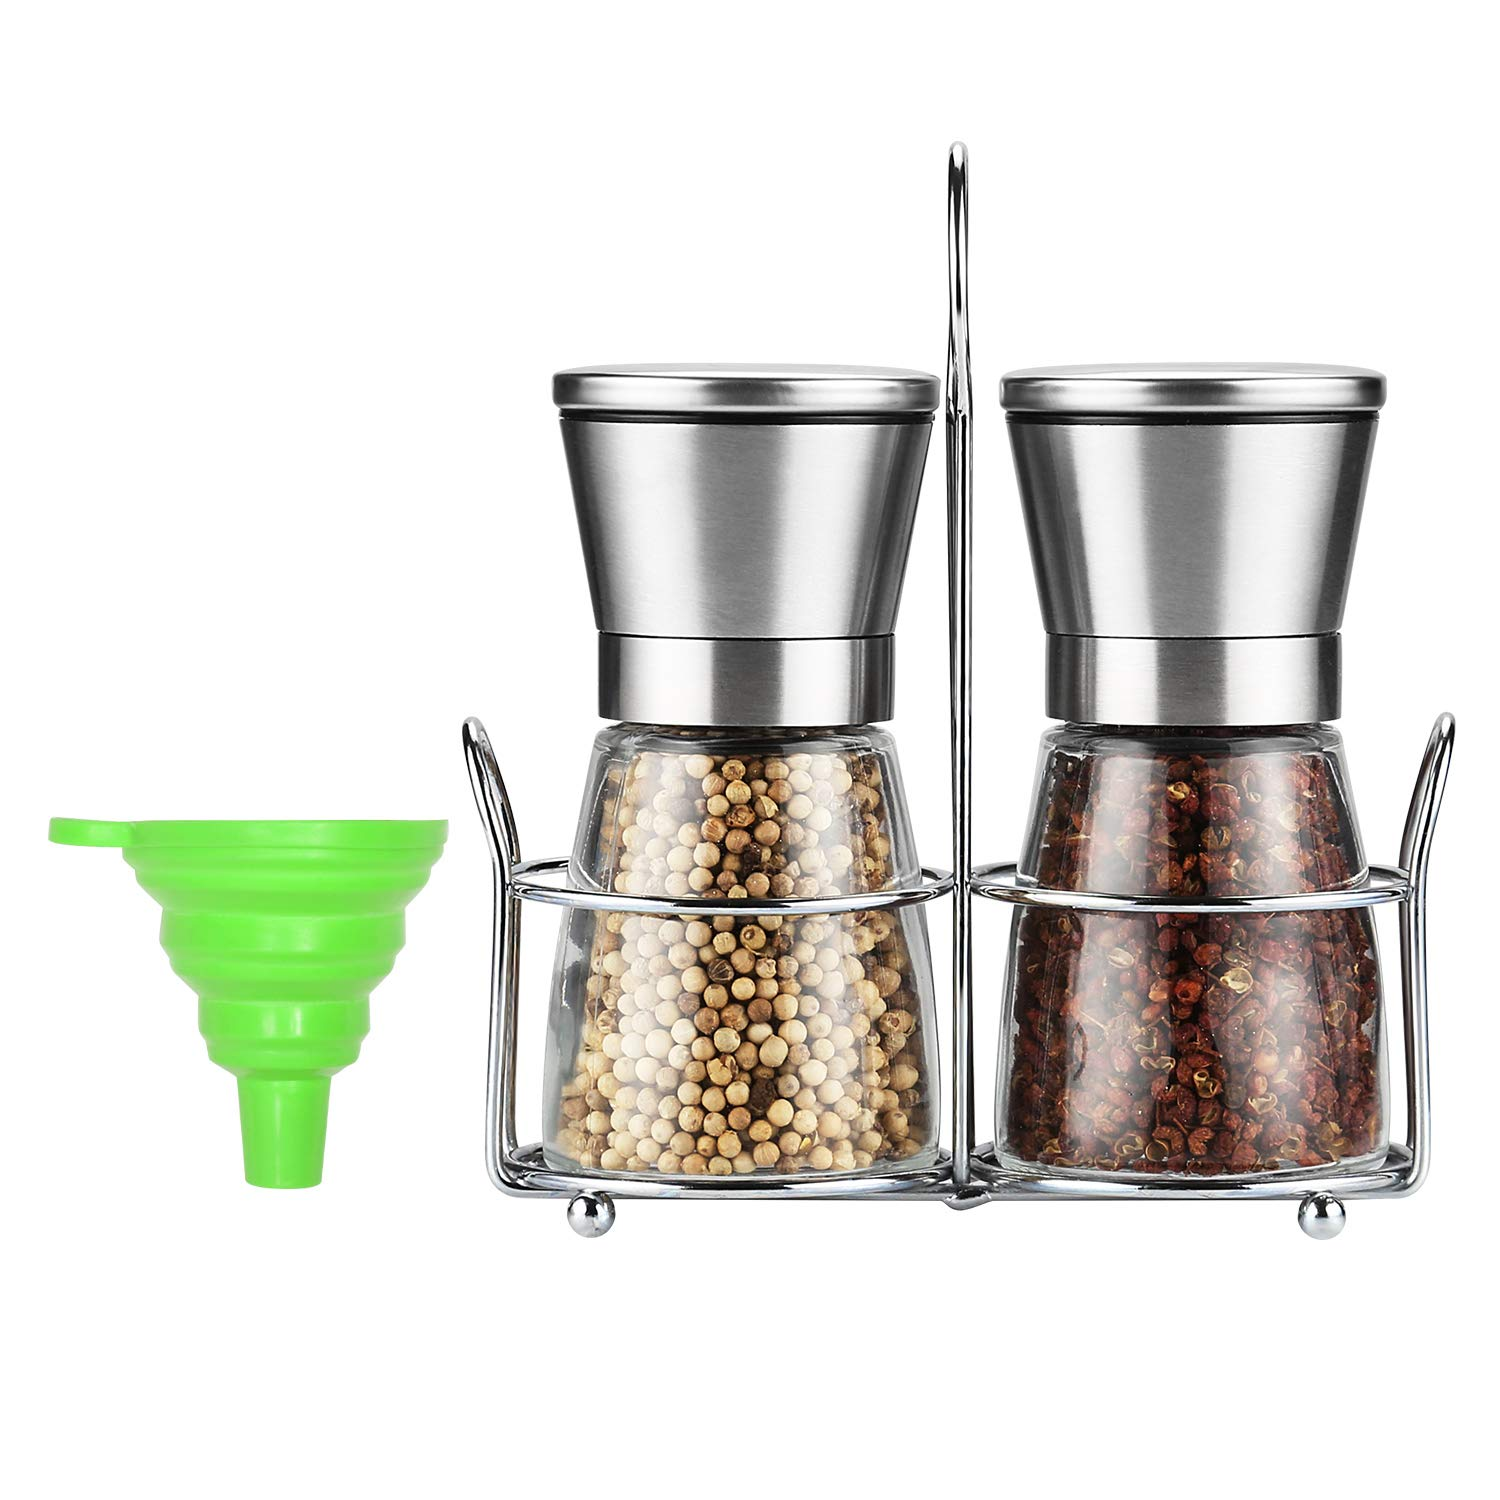 Salt and Pepper Grinder, [Set of 2] Premium Salt Grinders and Pepper Mill Shaker Mills Set With Stainless Steel Stand